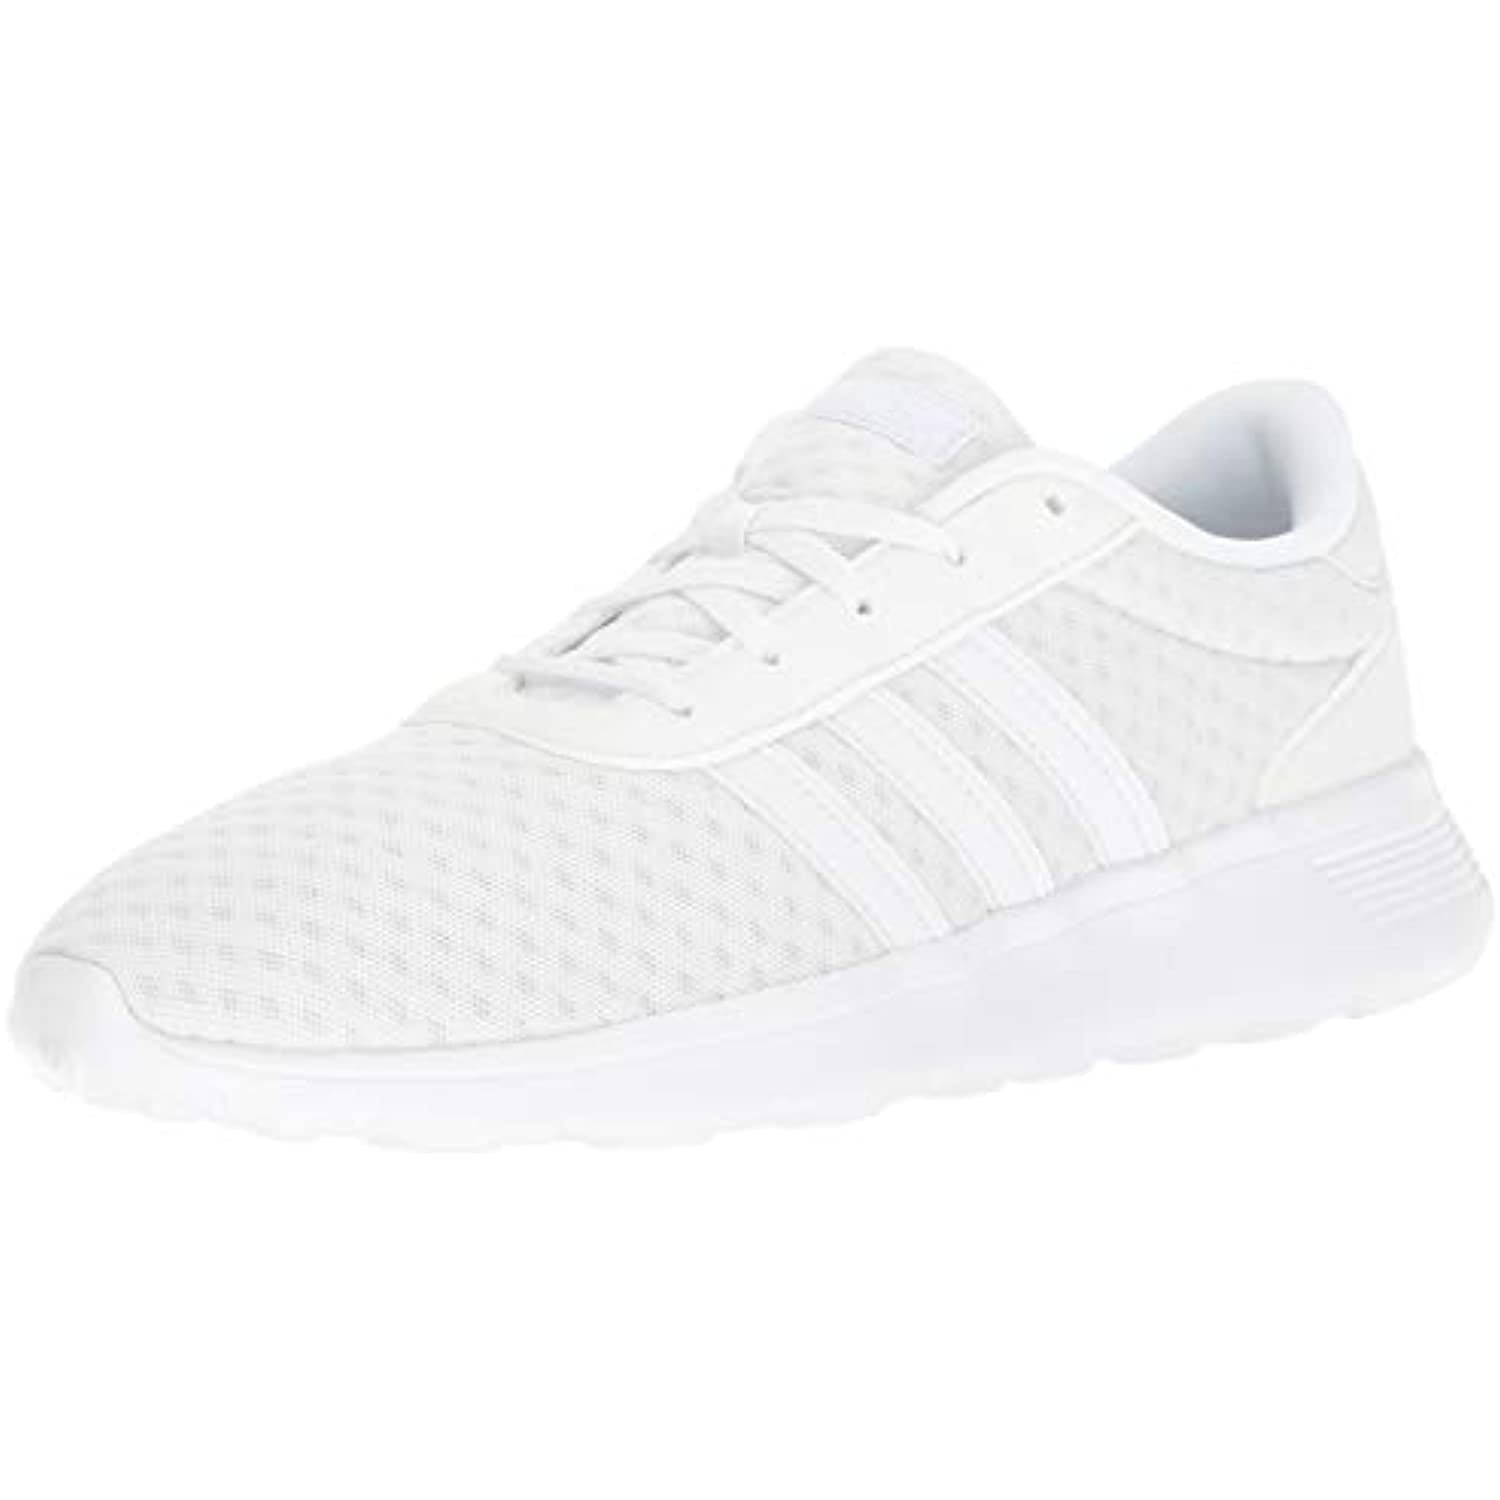 Adidas Femmes Eacute;tiques Racer Athl B071z72hl4 Chaussures Lite Ggf8p trxBsdhCQ